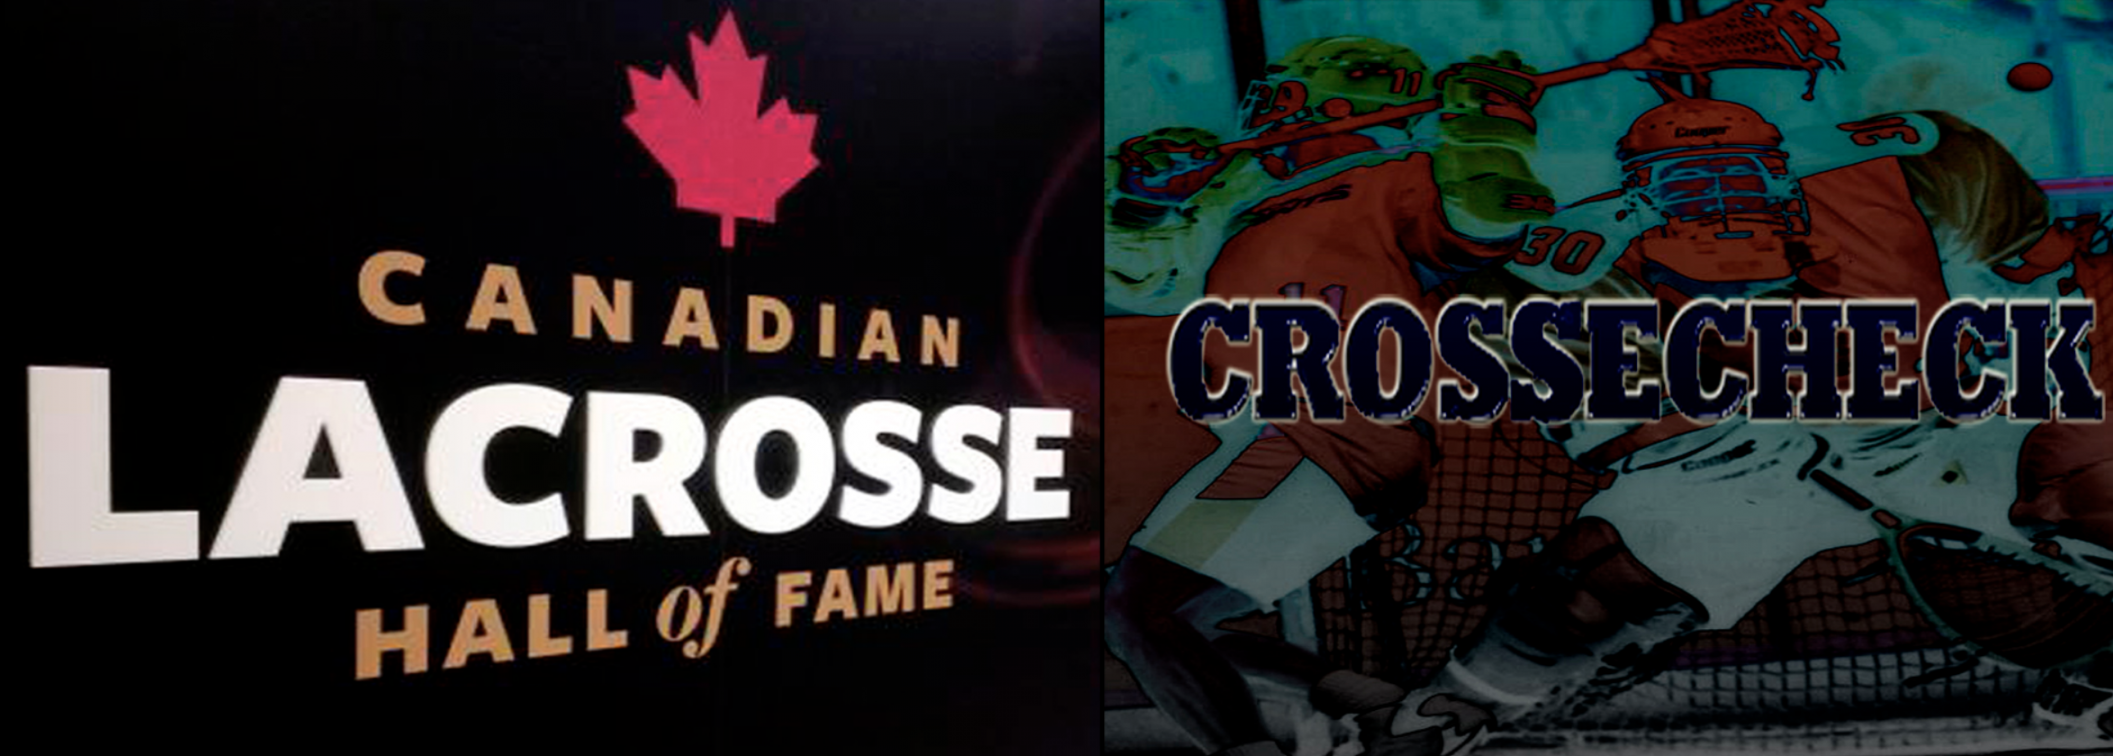 Crossecheck CLHOF Announcment header image 2020 05 10 9 28 17 PM